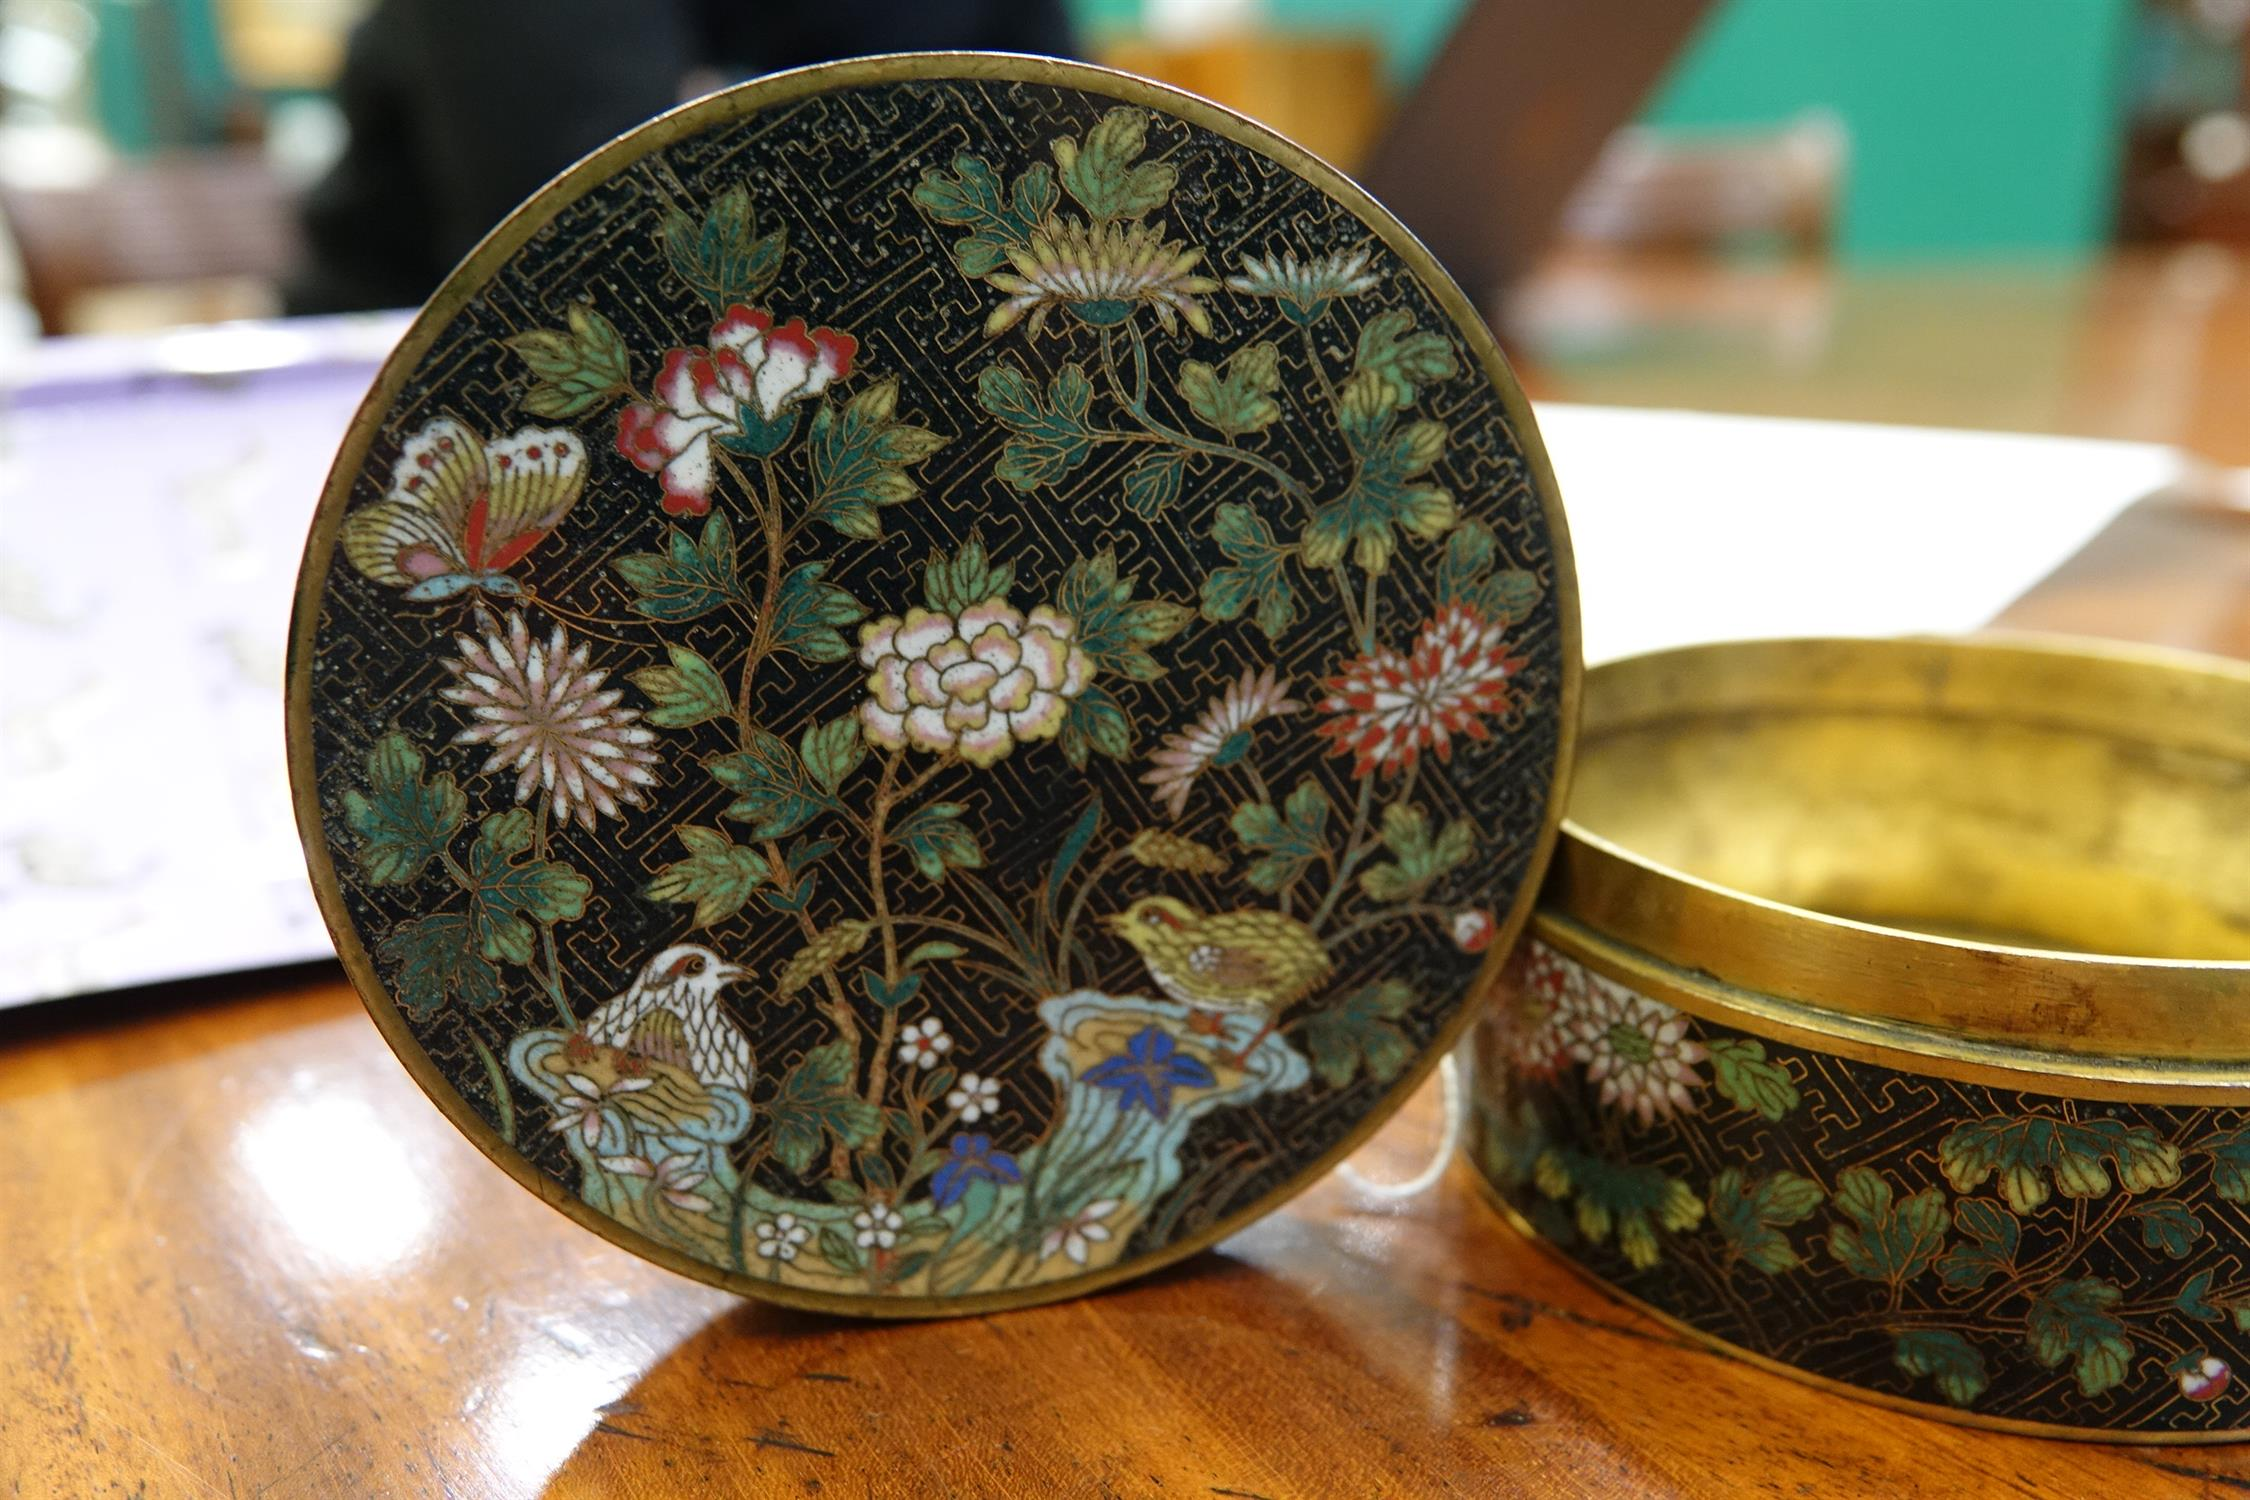 A 'FLOWER AND ROCKS' ROUND CLOISONNE BOX AND COVER China, Late Qing to Republican / Minguo period - Image 16 of 36